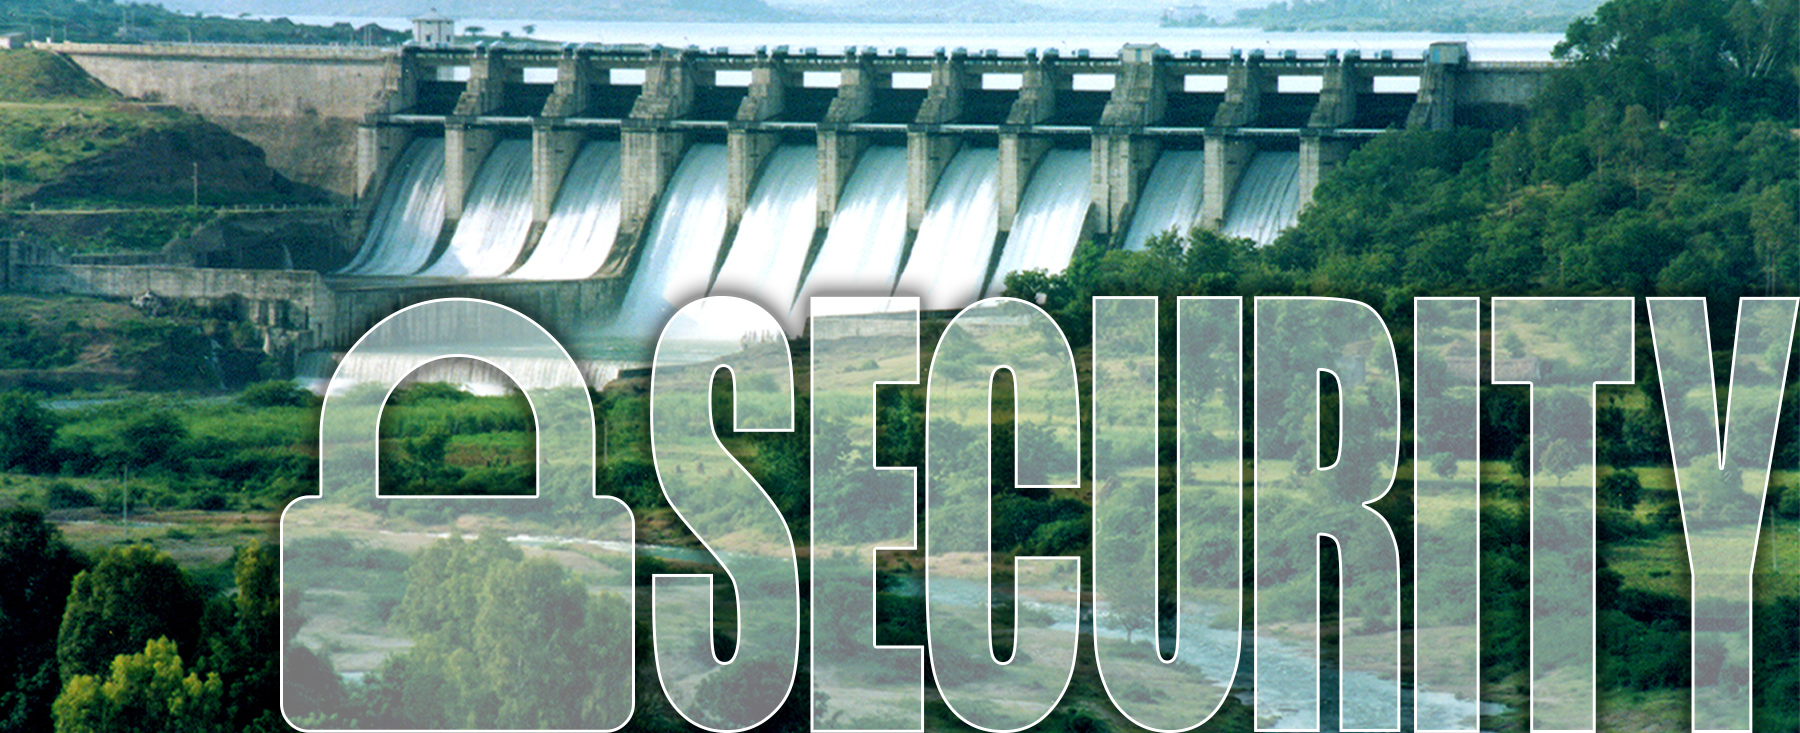 Our Comprehensive Approach to Securing Dams